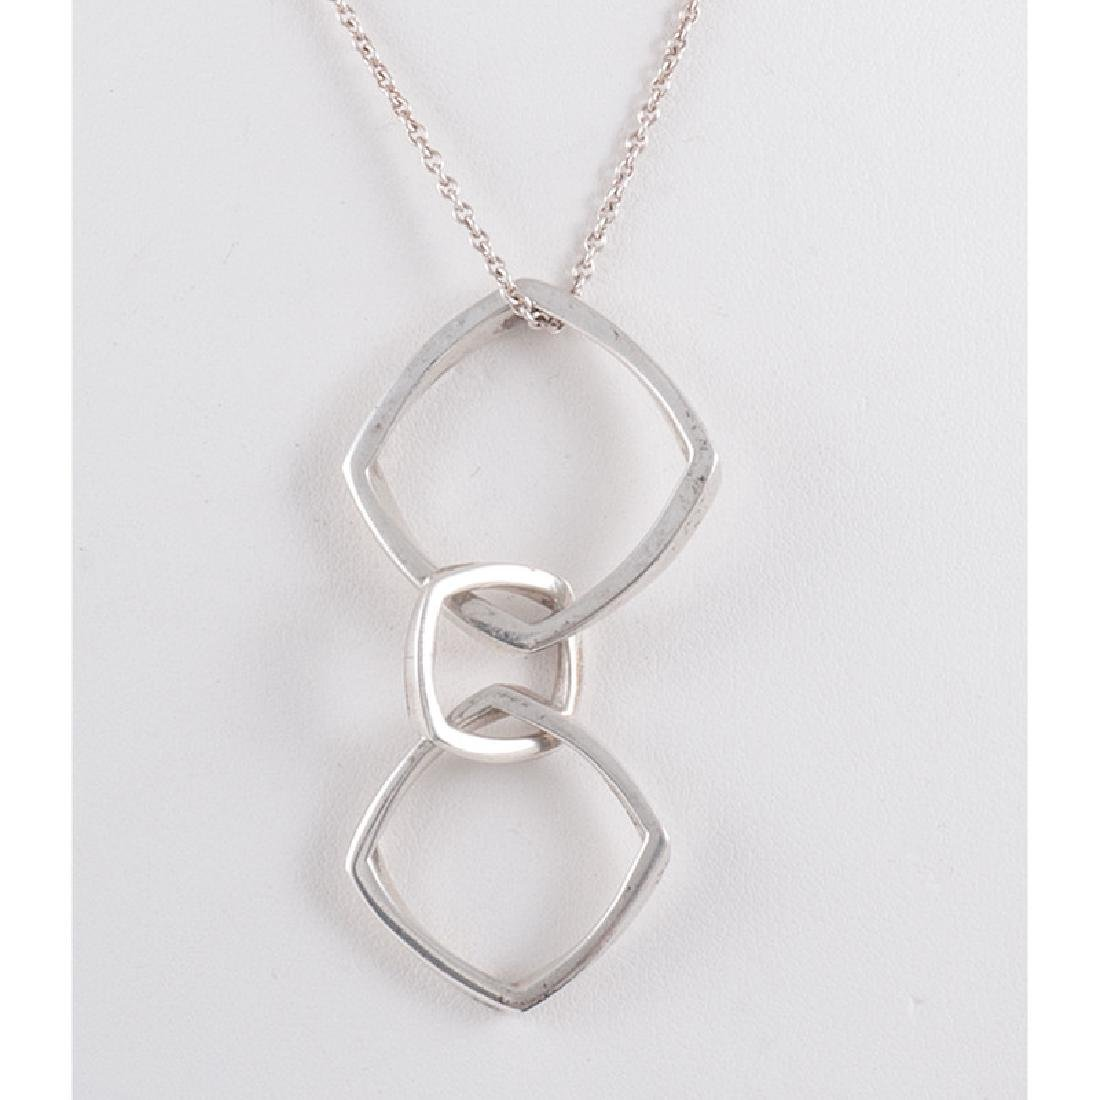 Frank Gehry for Tiffany & Co. Necklace in Sterling